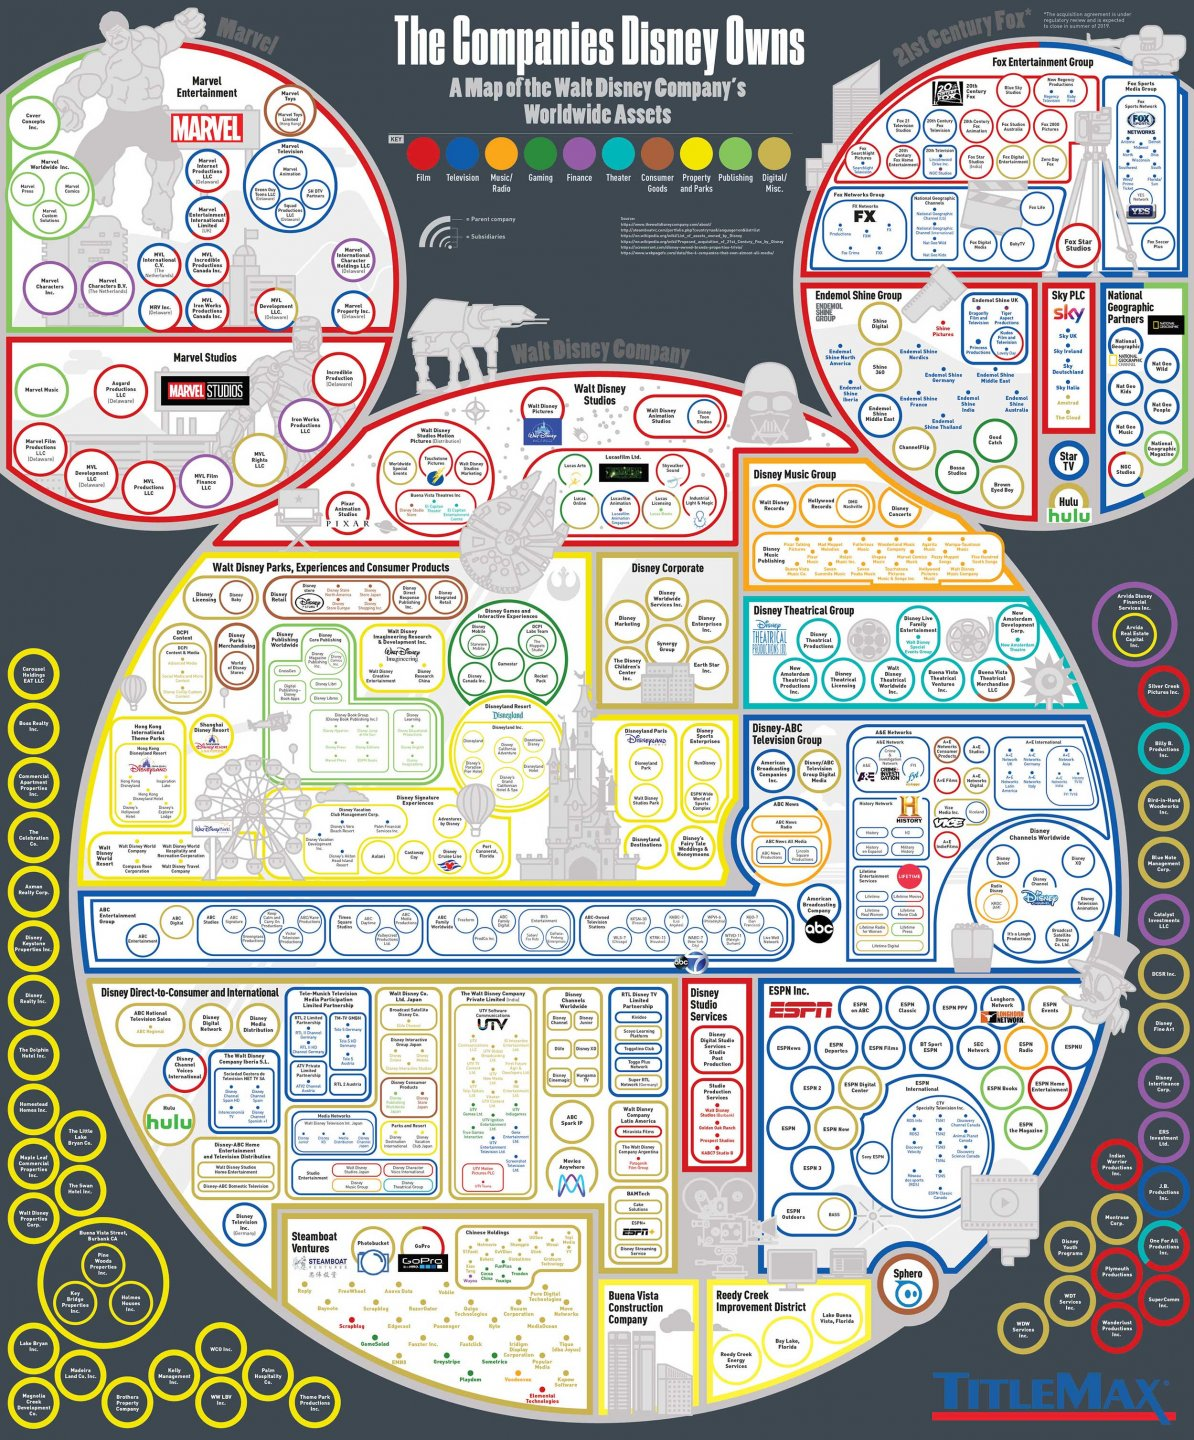 1c8ace8f-every-company-disney-owns-13_pageversion-lg.jpg